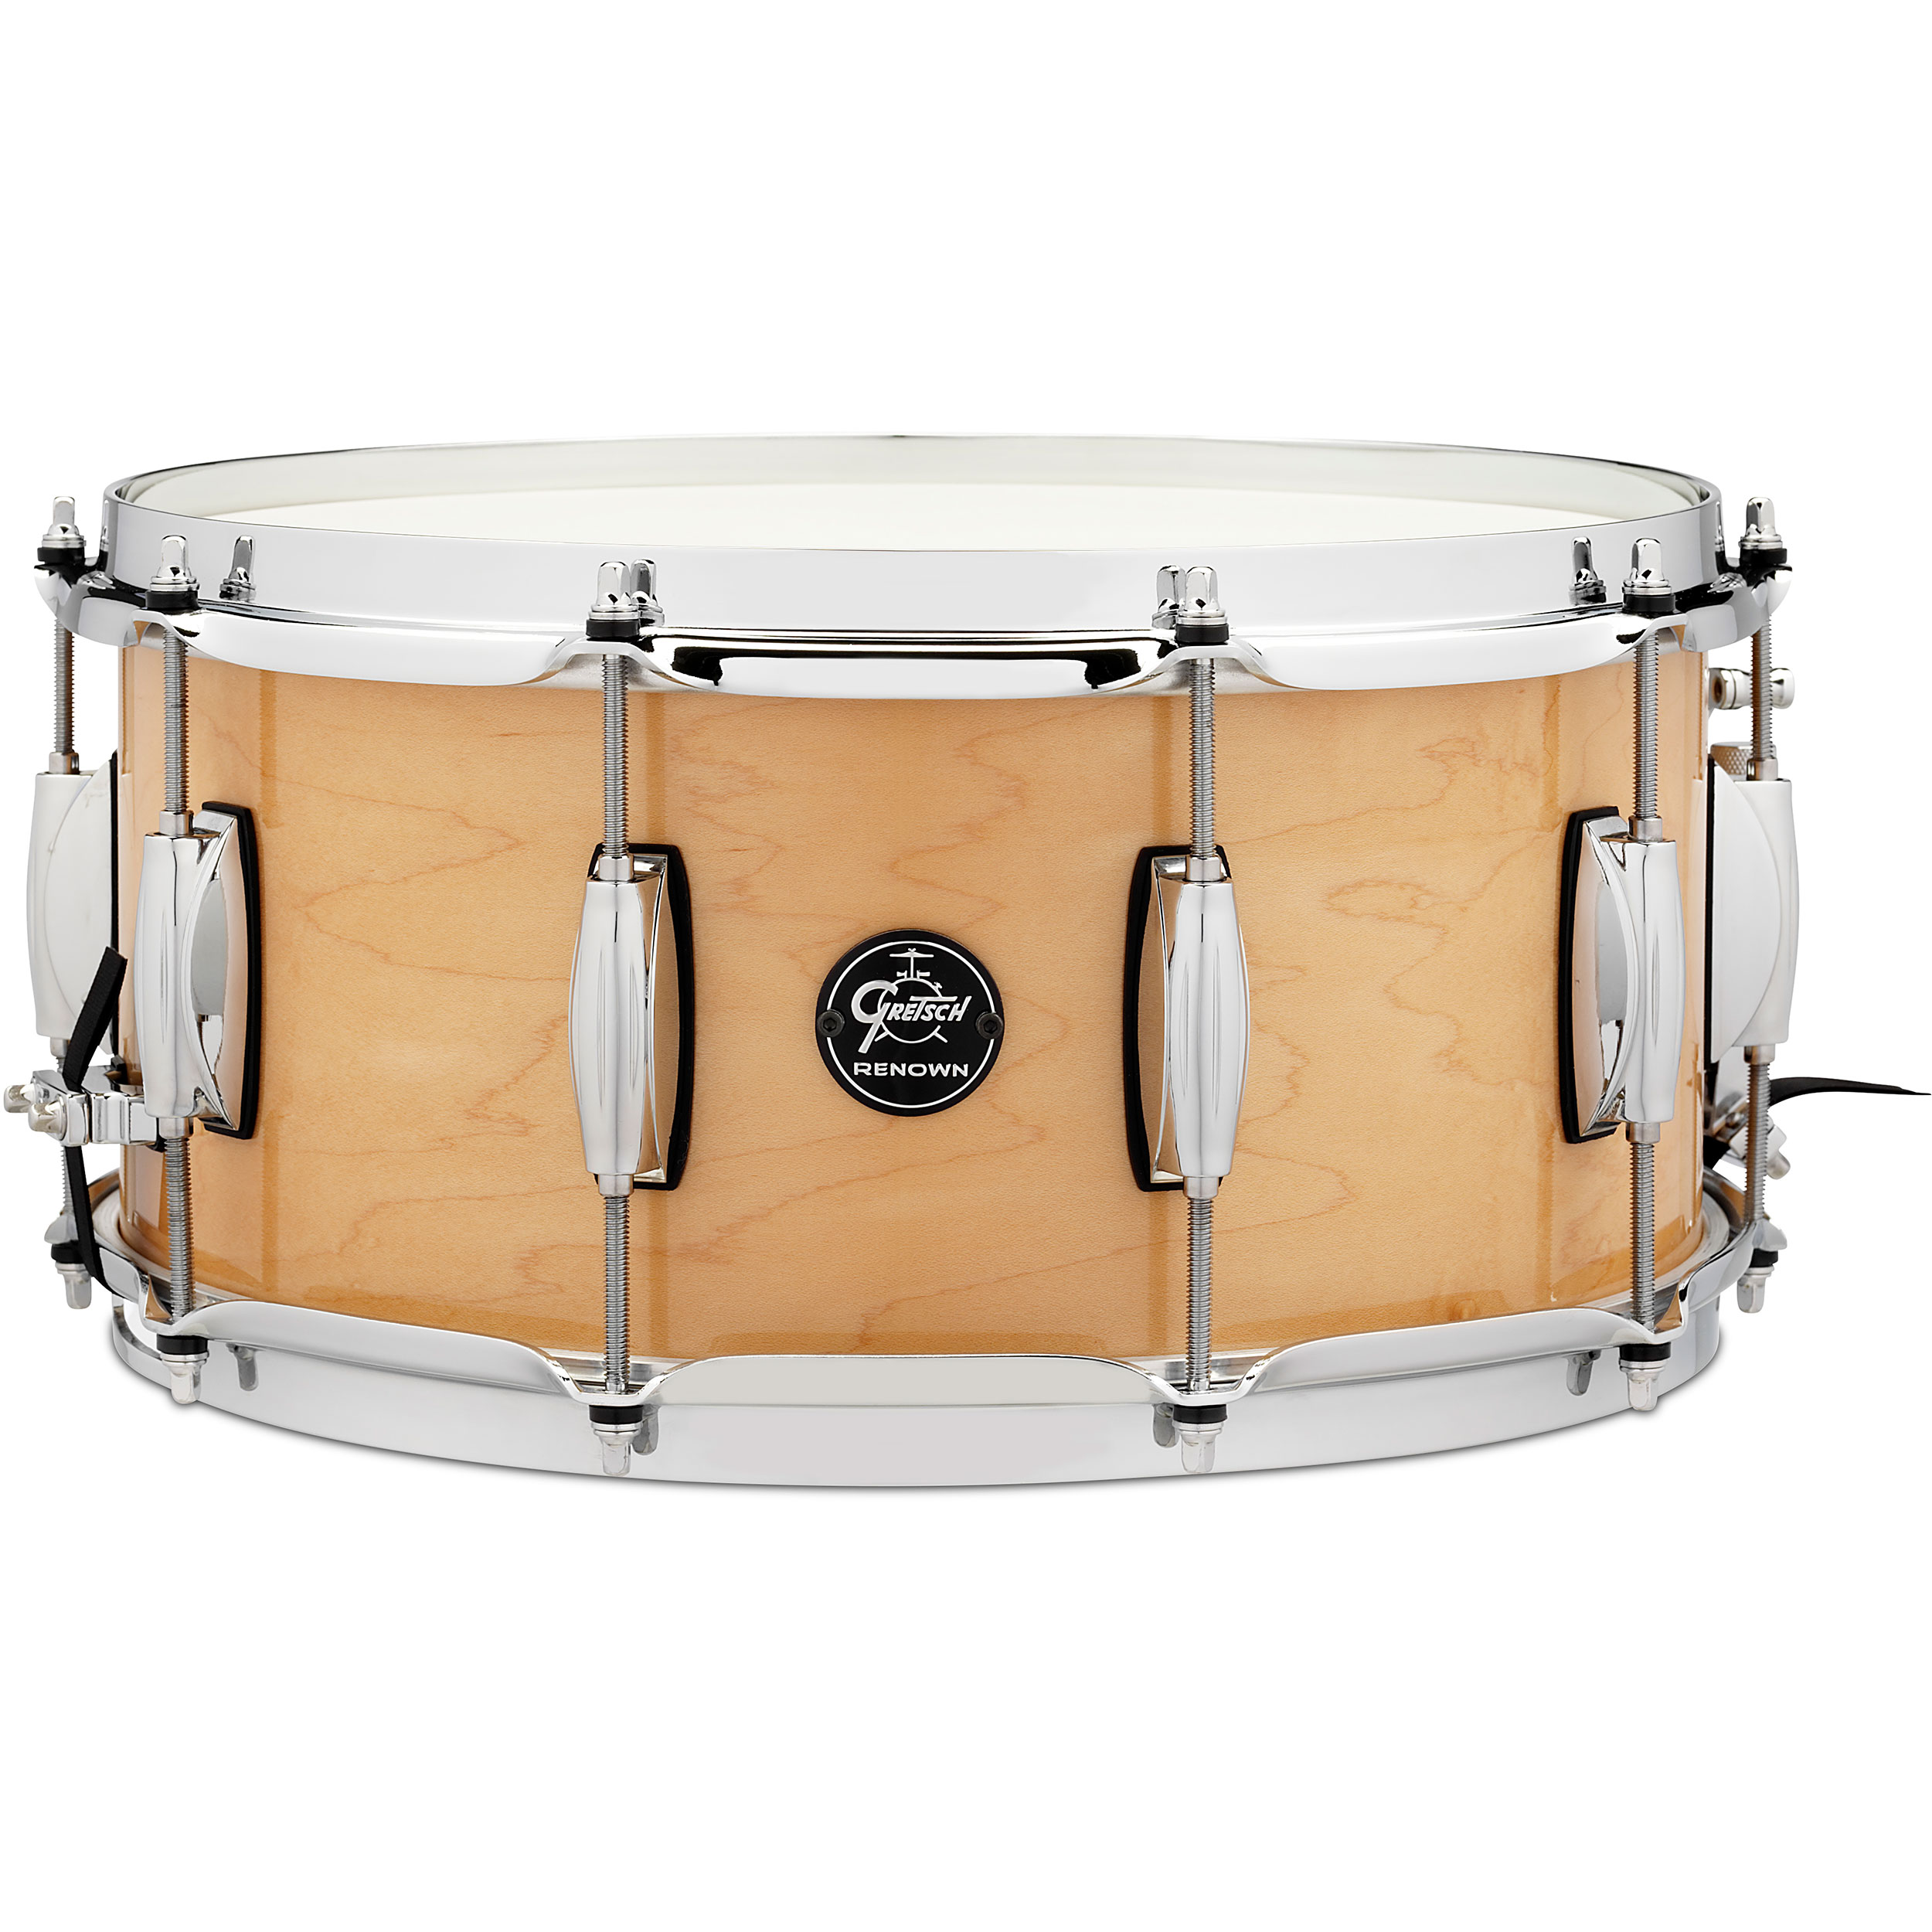 "Gretsch 6.5"" x 14"" Renown Snare Drum"